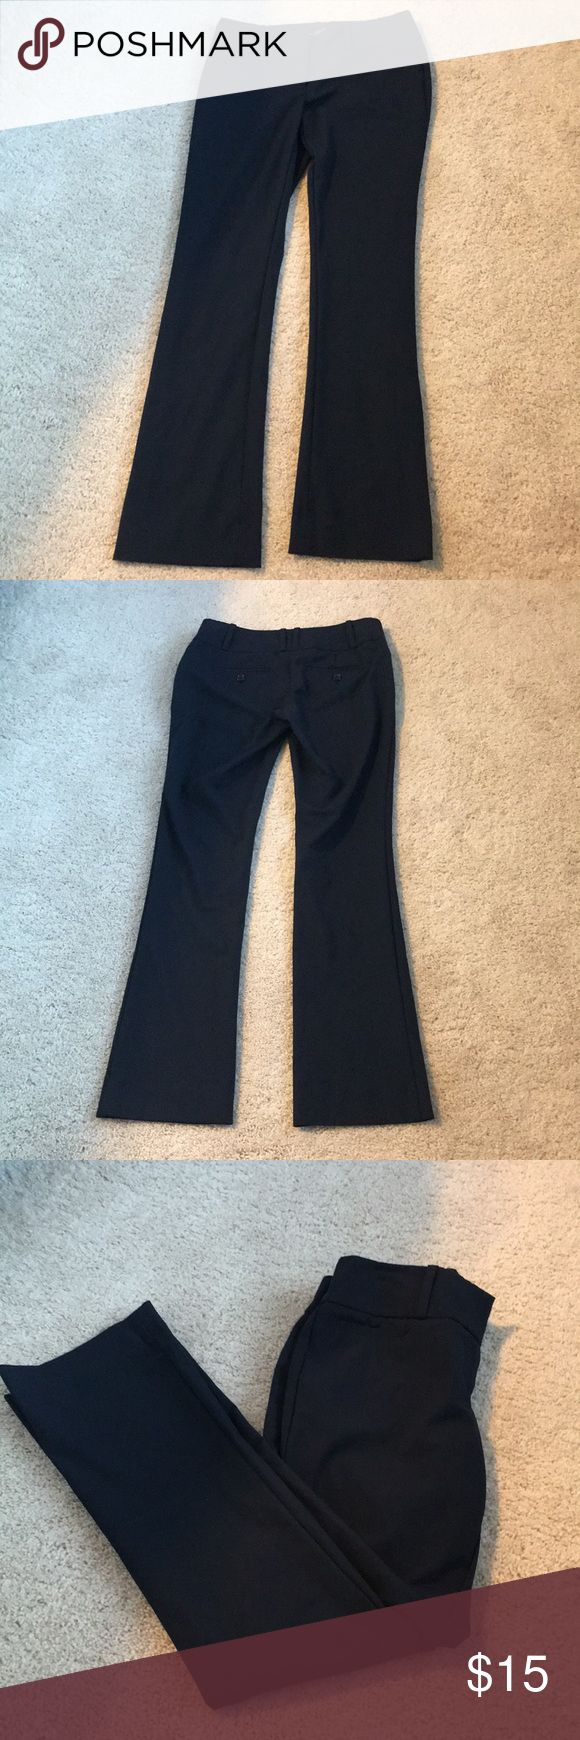 The limited free fit navy blue pants Navy blue dress pants size 00short The Limited Pants Boot Cut & Flare